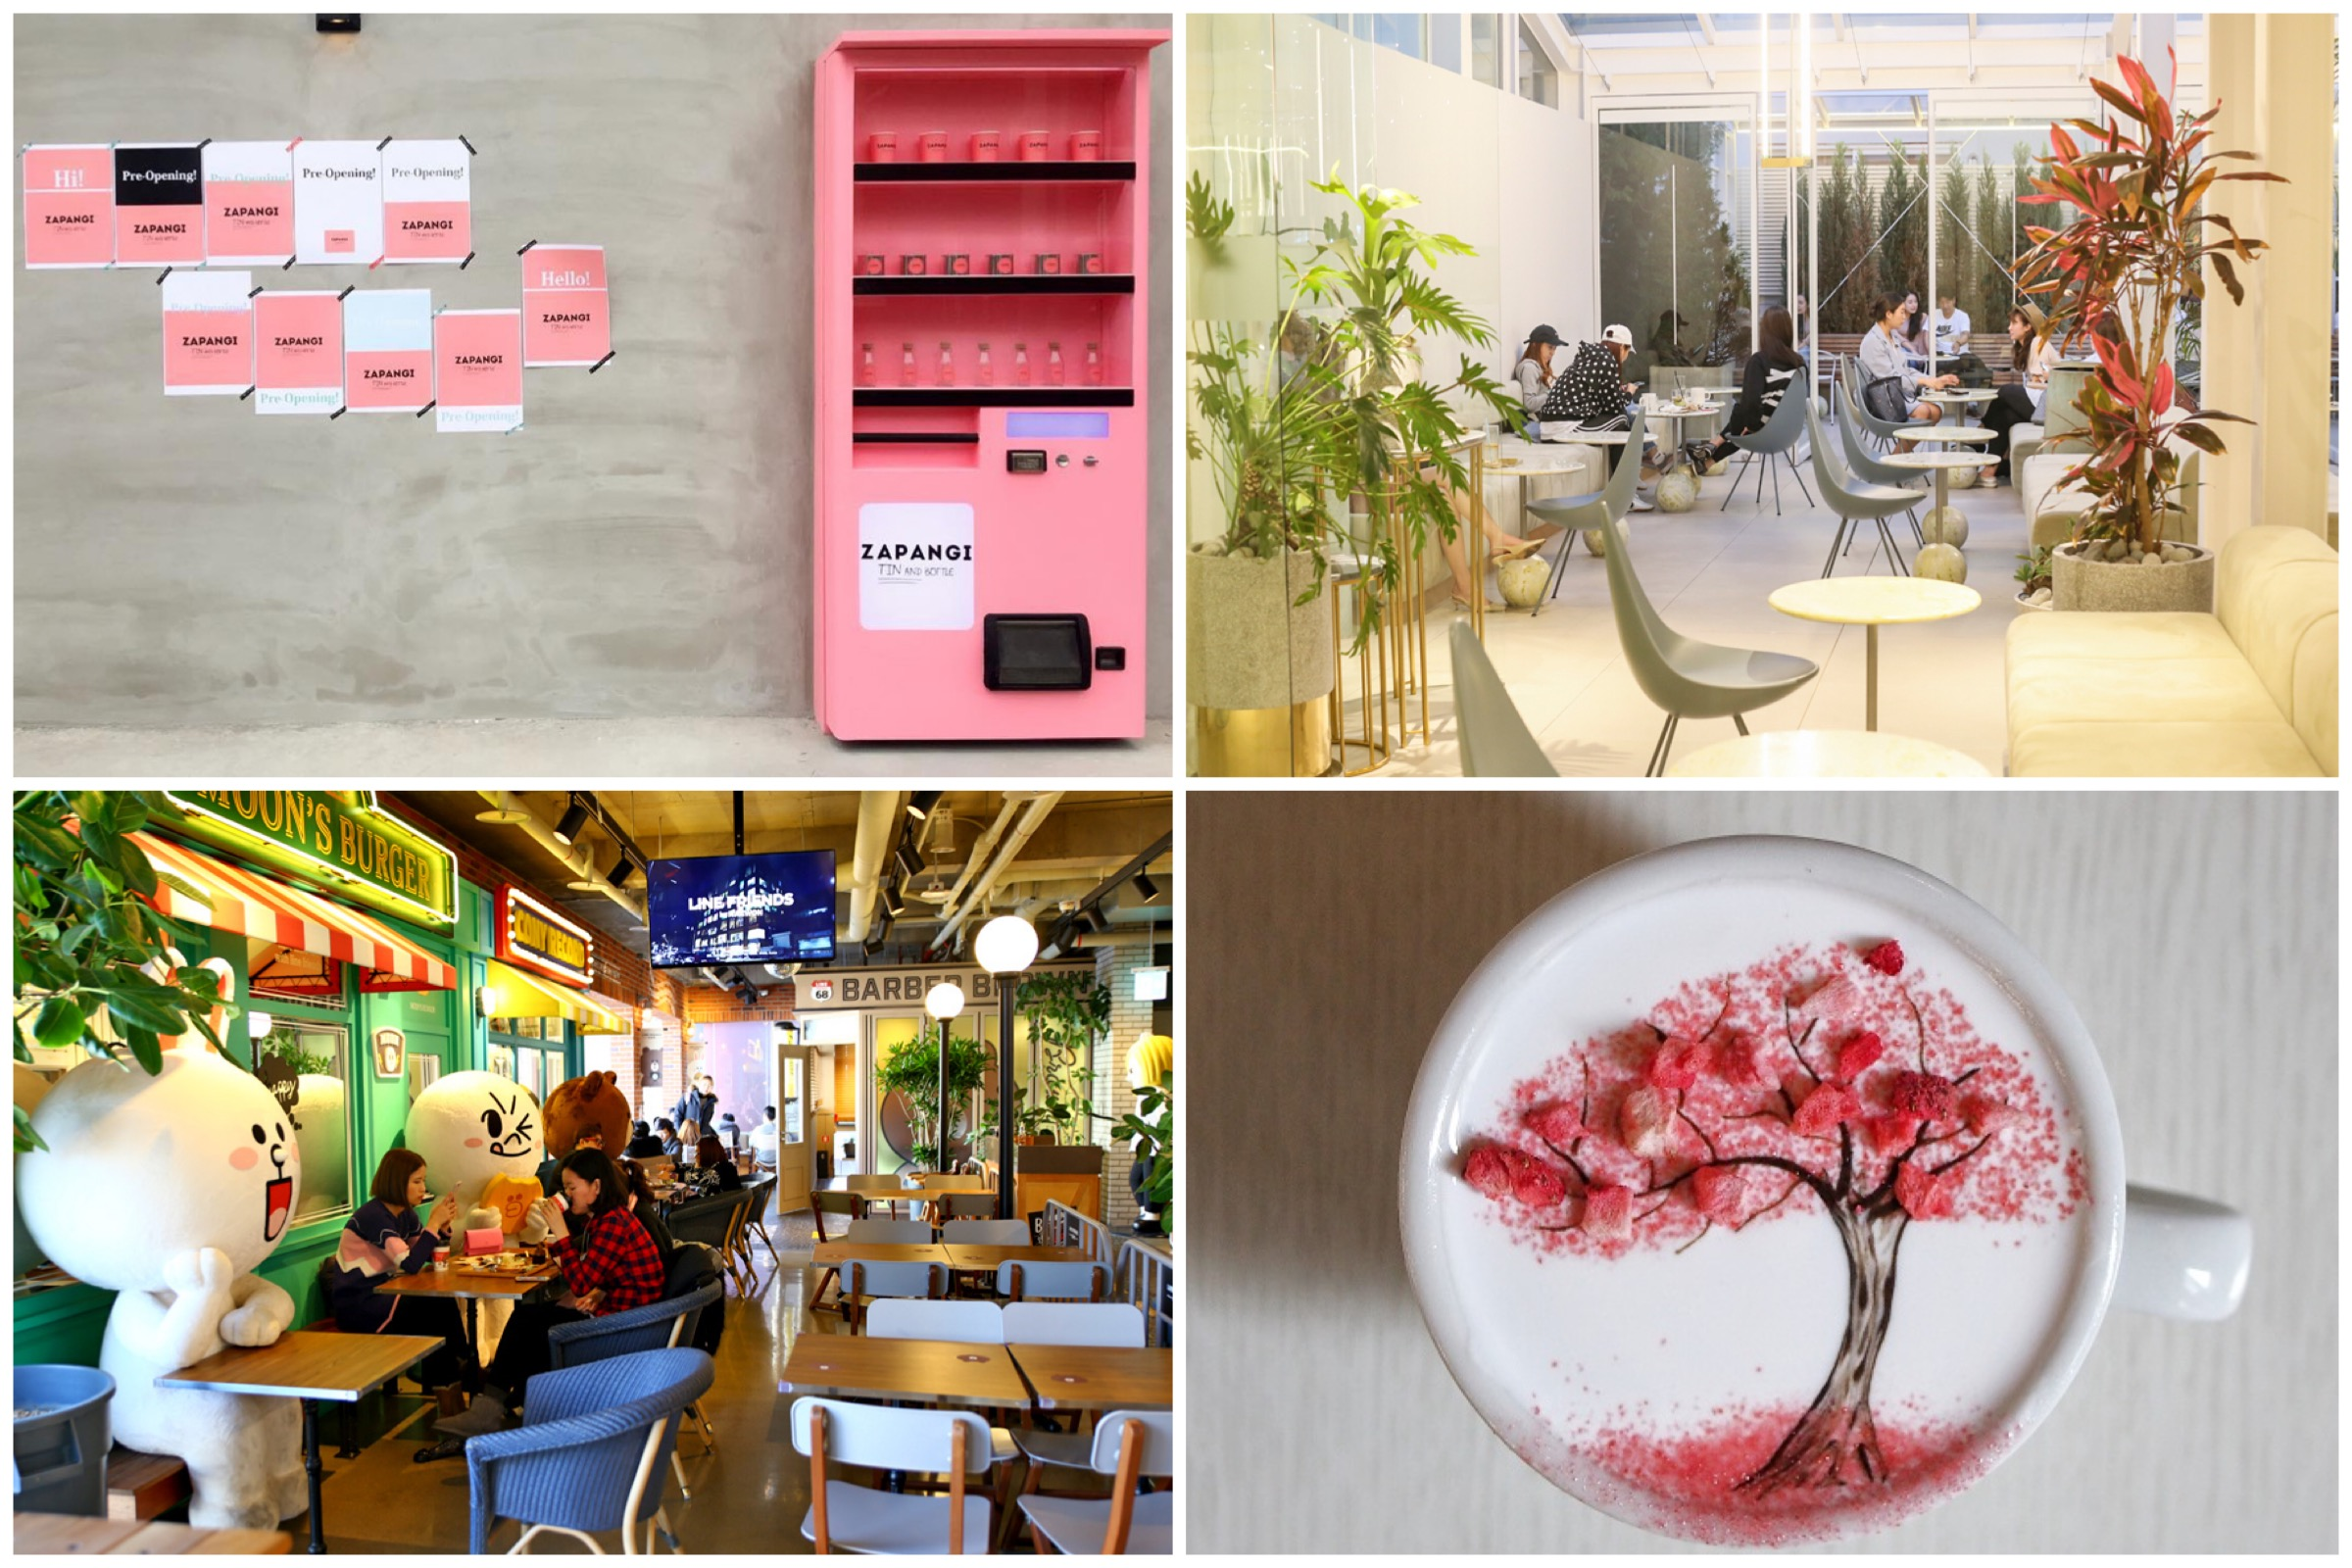 10 Most Instagrammable Cafes In Seoul - Café Onion, The Skyfarm And Zapangi Cafe Behind A Vending Machine